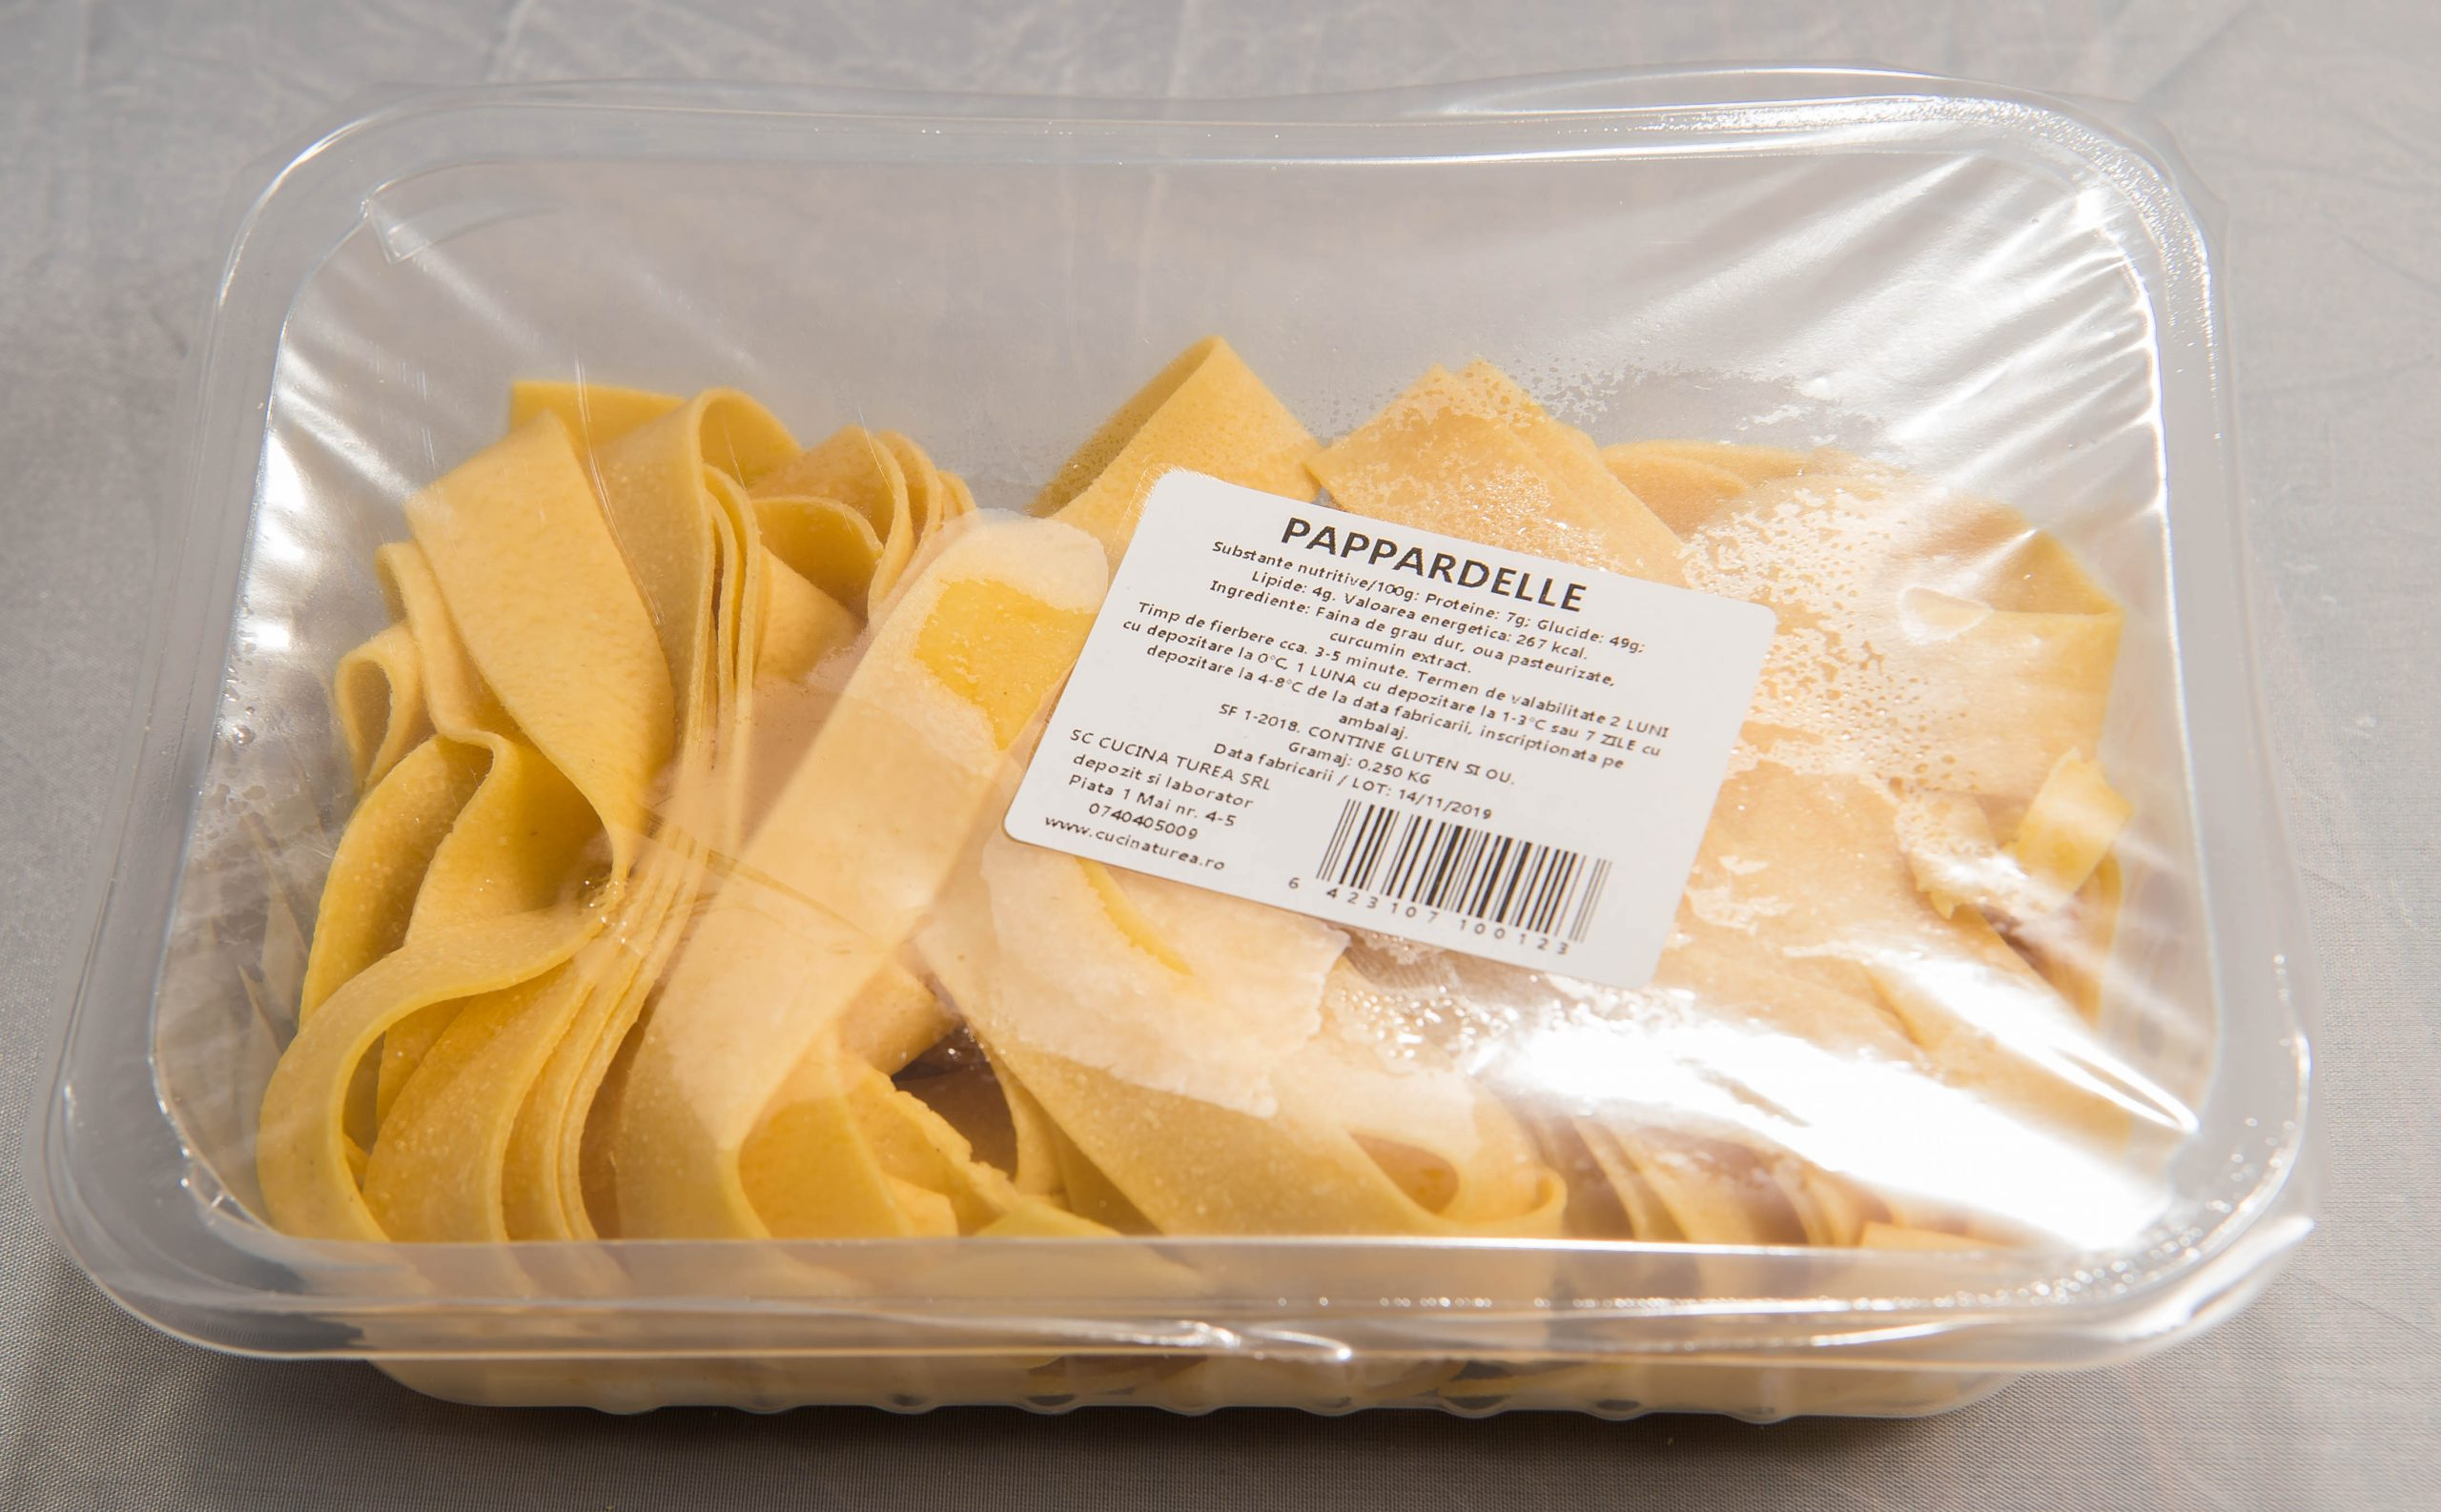 Pappardelle Fresh